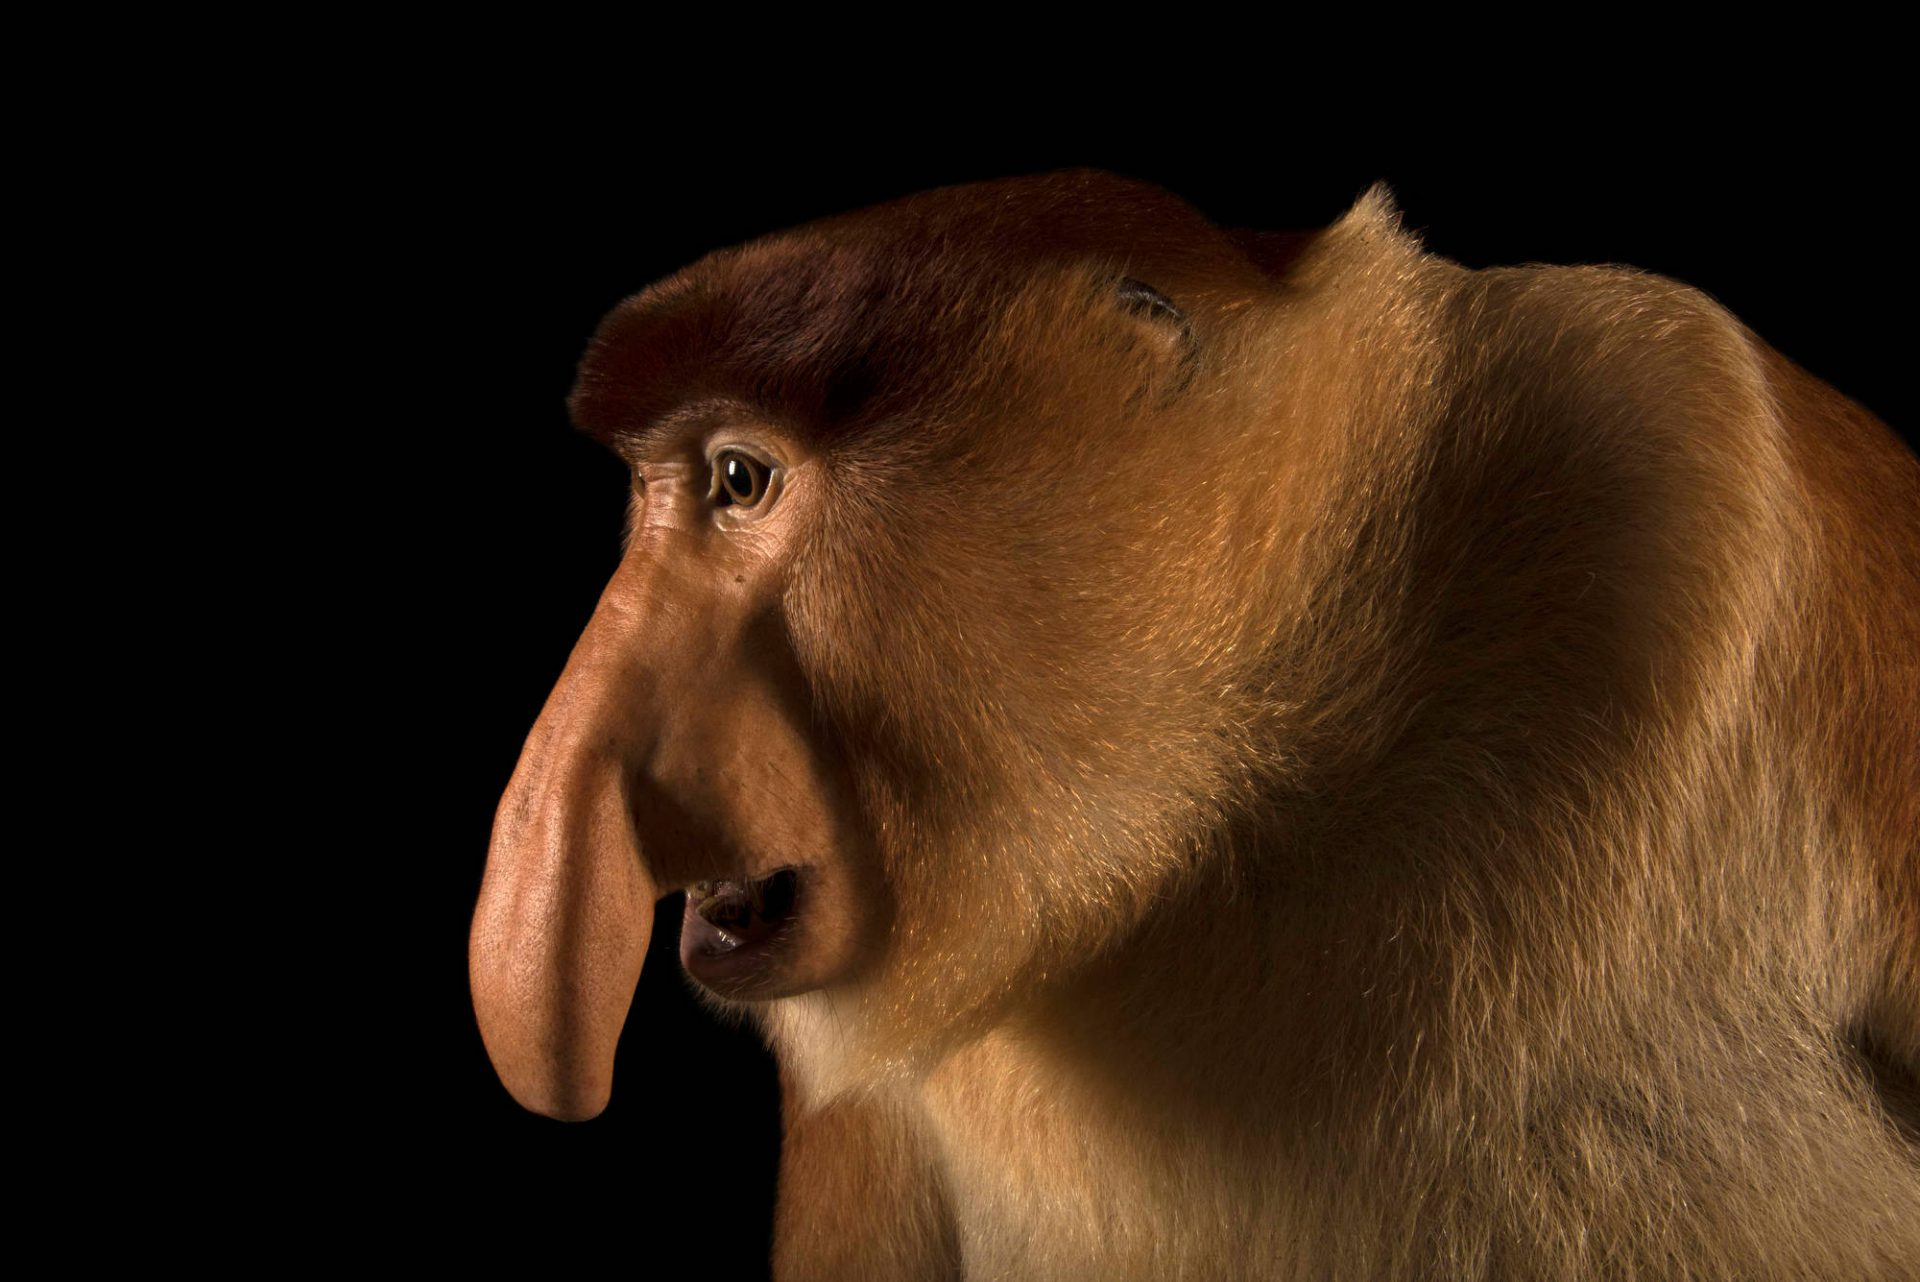 Photo: A proboscis monkey (Nasalis larvatus) at the Singapore Zoo.